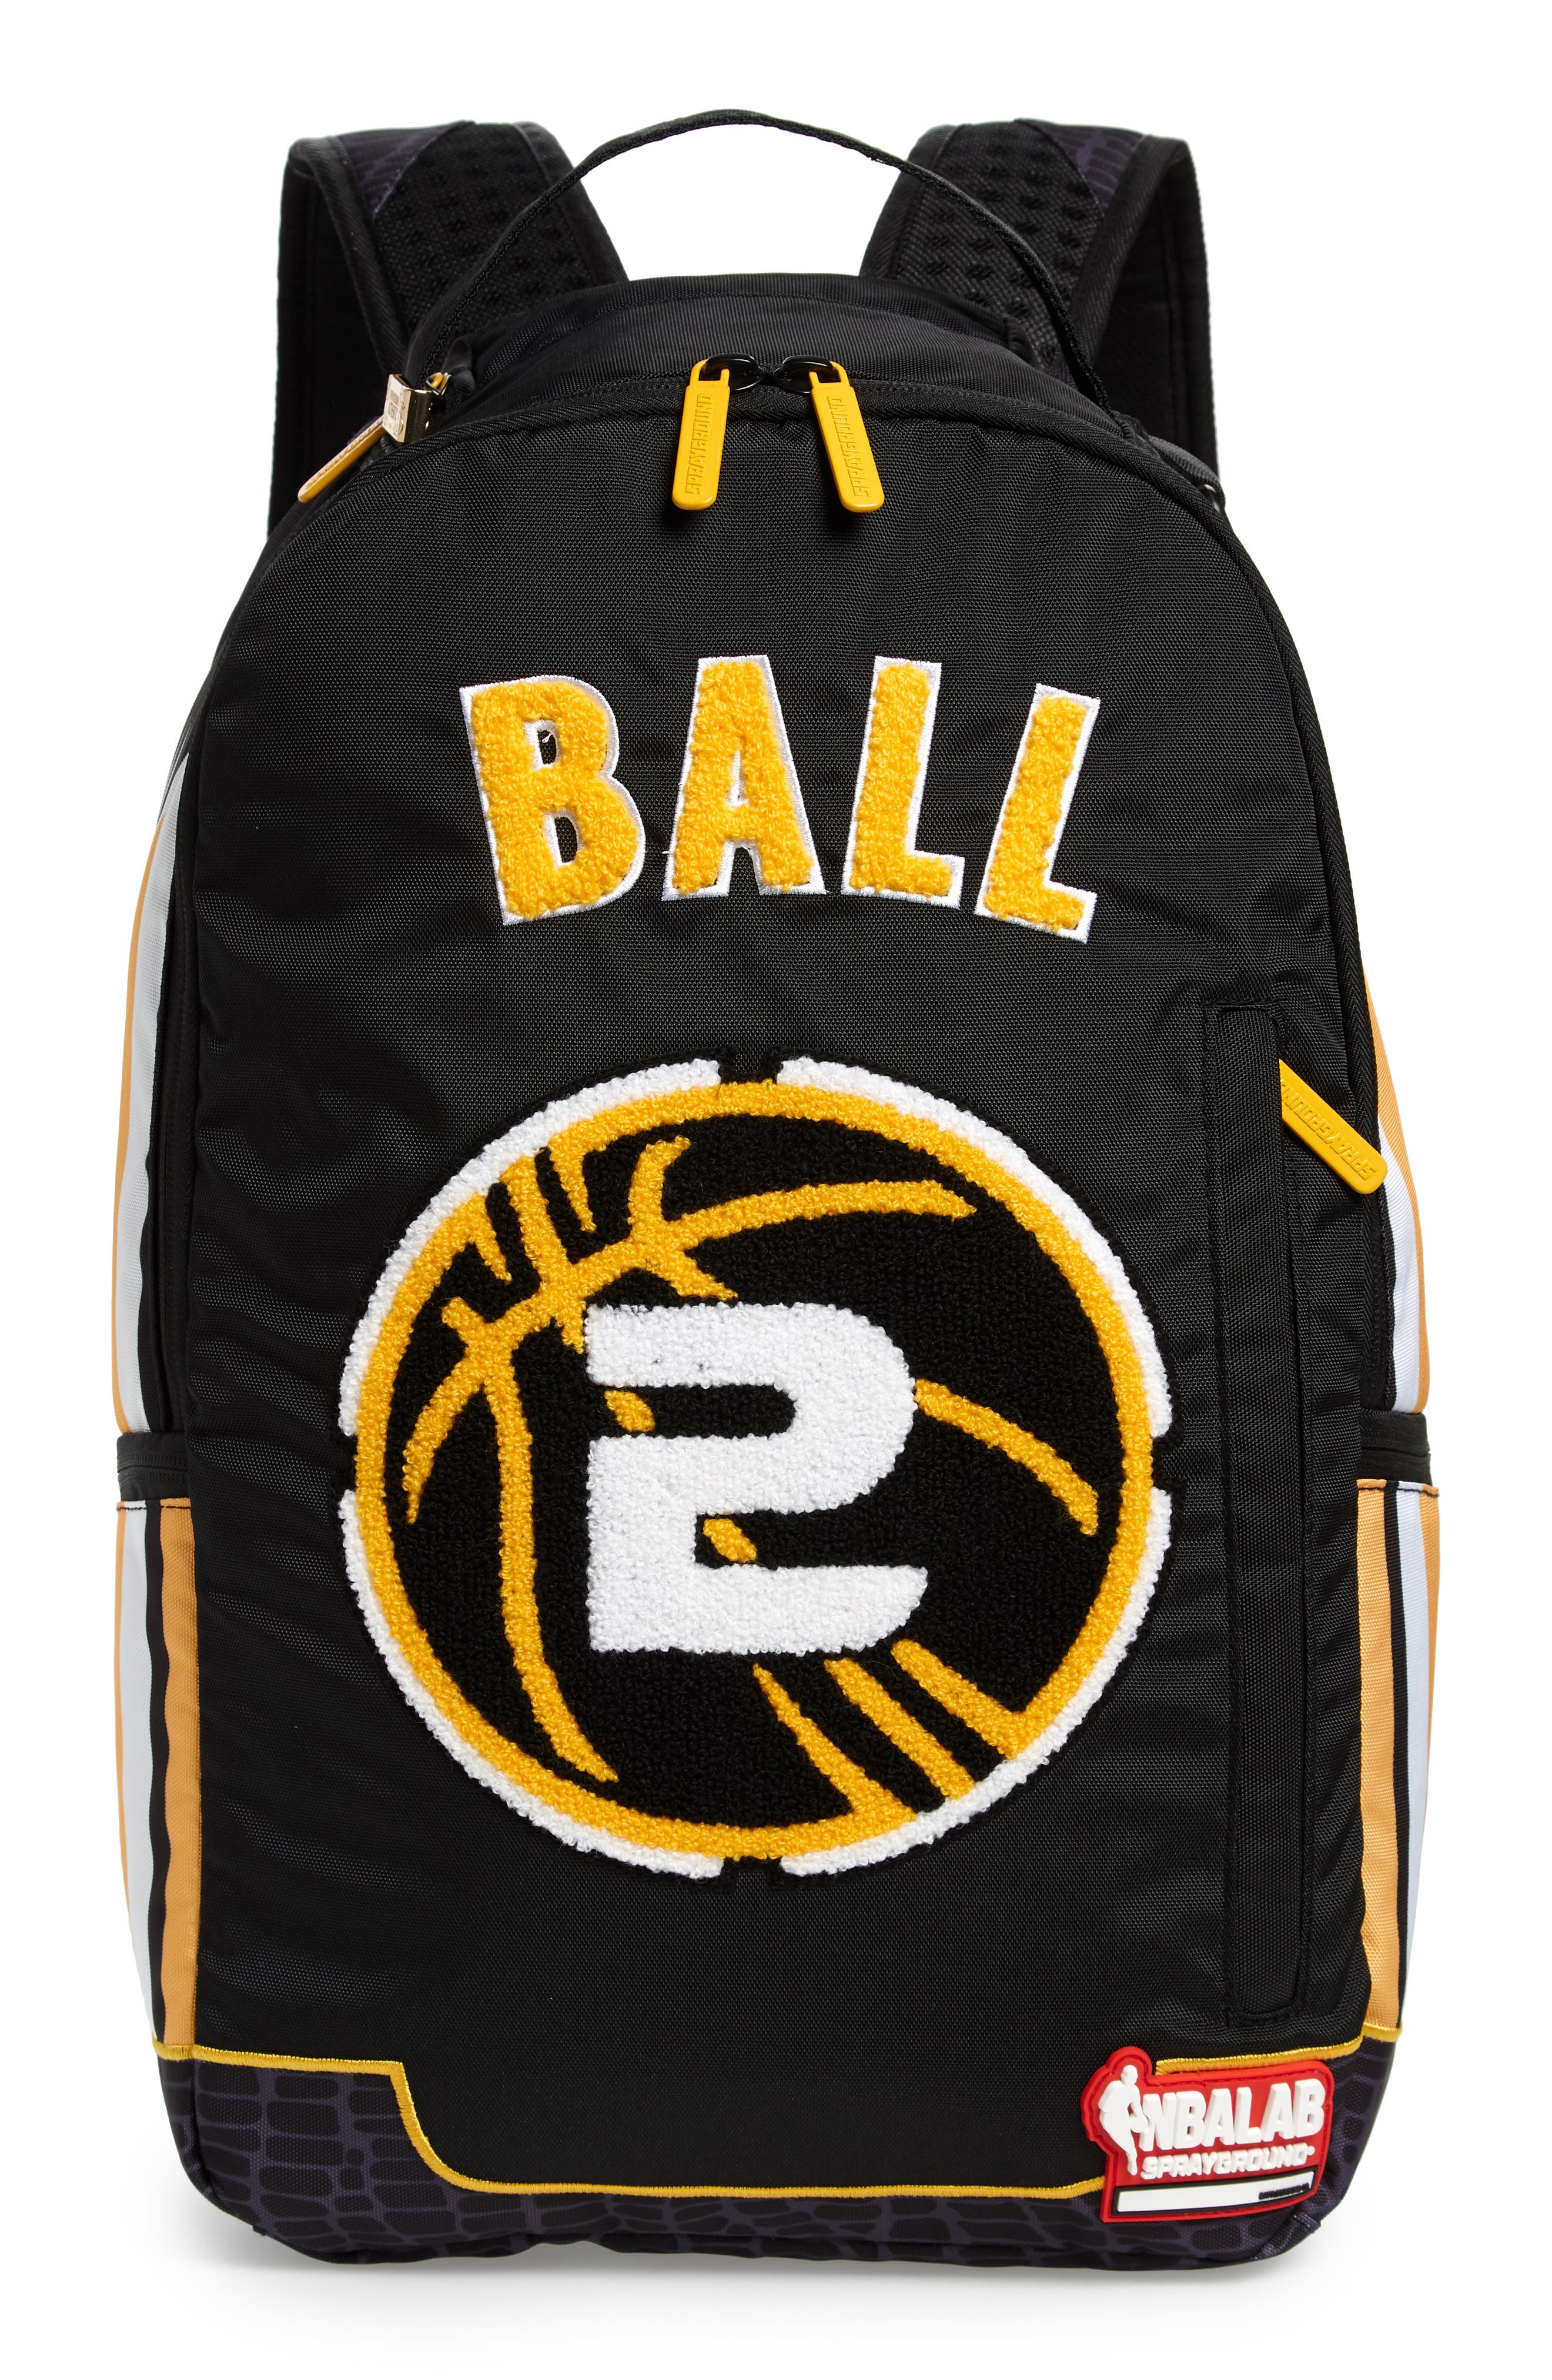 Ball Jersey Backpack,                         Main,                         color, BLACK